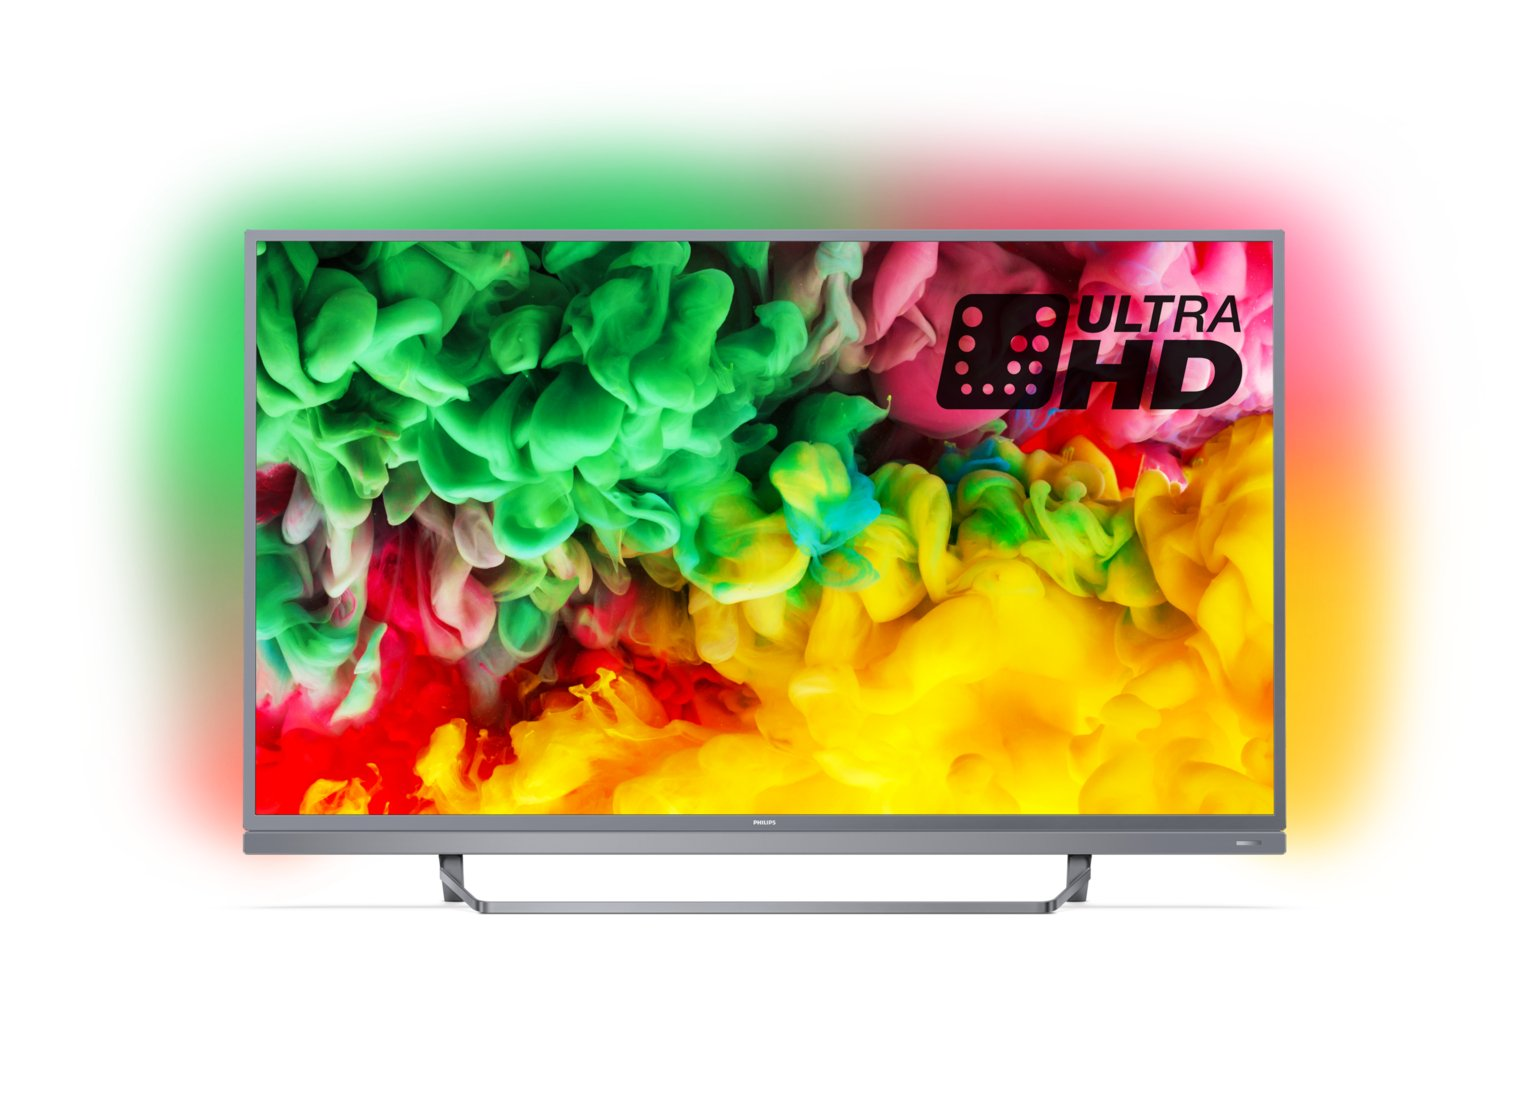 Philips 55PUS6803 55 Inch Smart UHD AmbilightTV with HDR from Philips